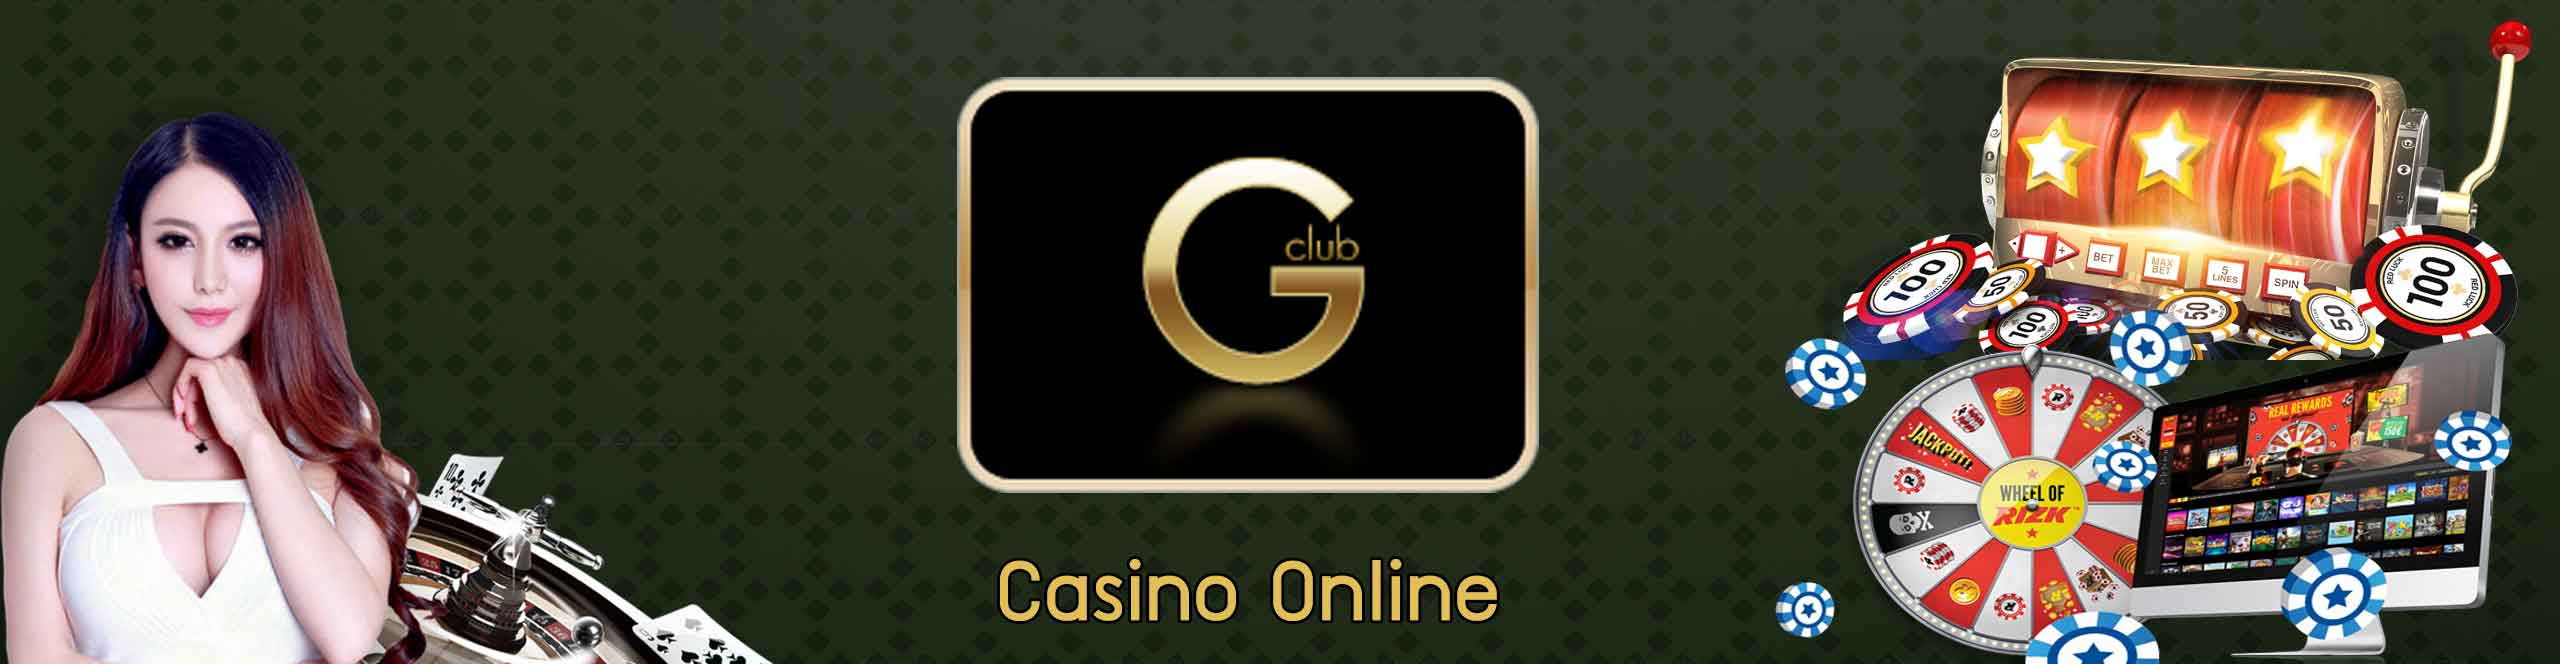 casinoonlineslotgirl